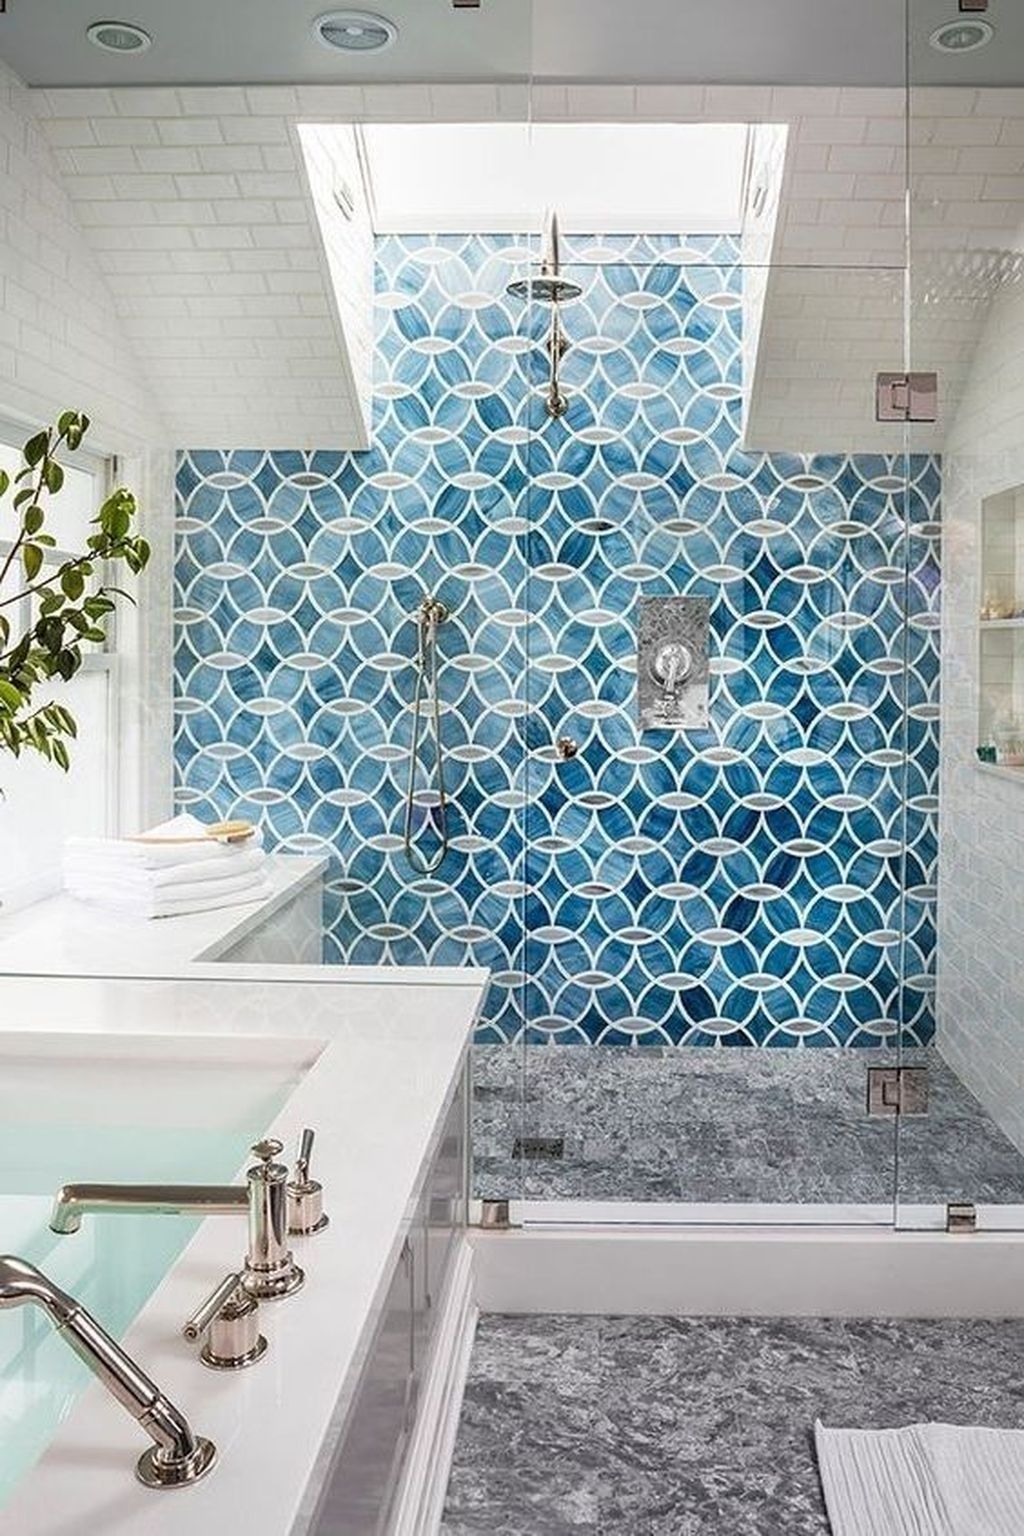 Fascinating Bathroom Ideas For Inspirations 35